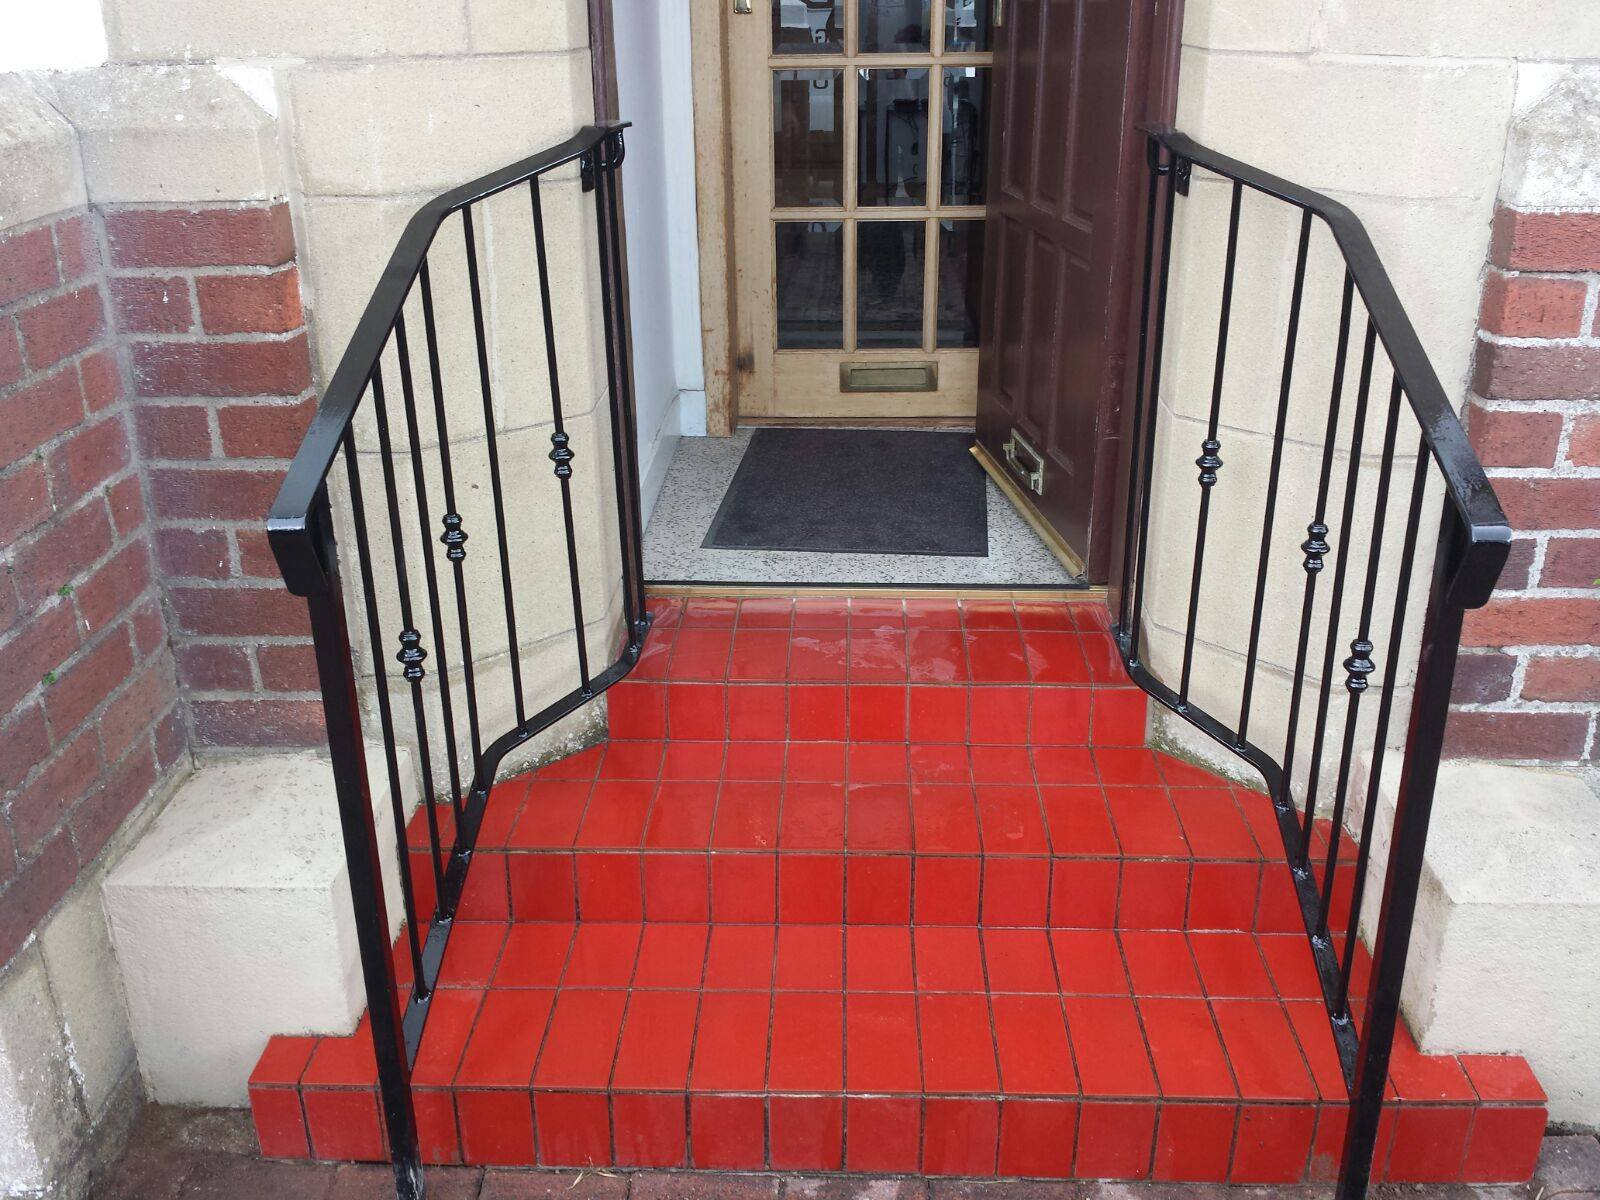 Matching handrails with decorative metal bushes, finished in black gloss. Handrails installed in Troon, Ayrshire by Dain Art Iron